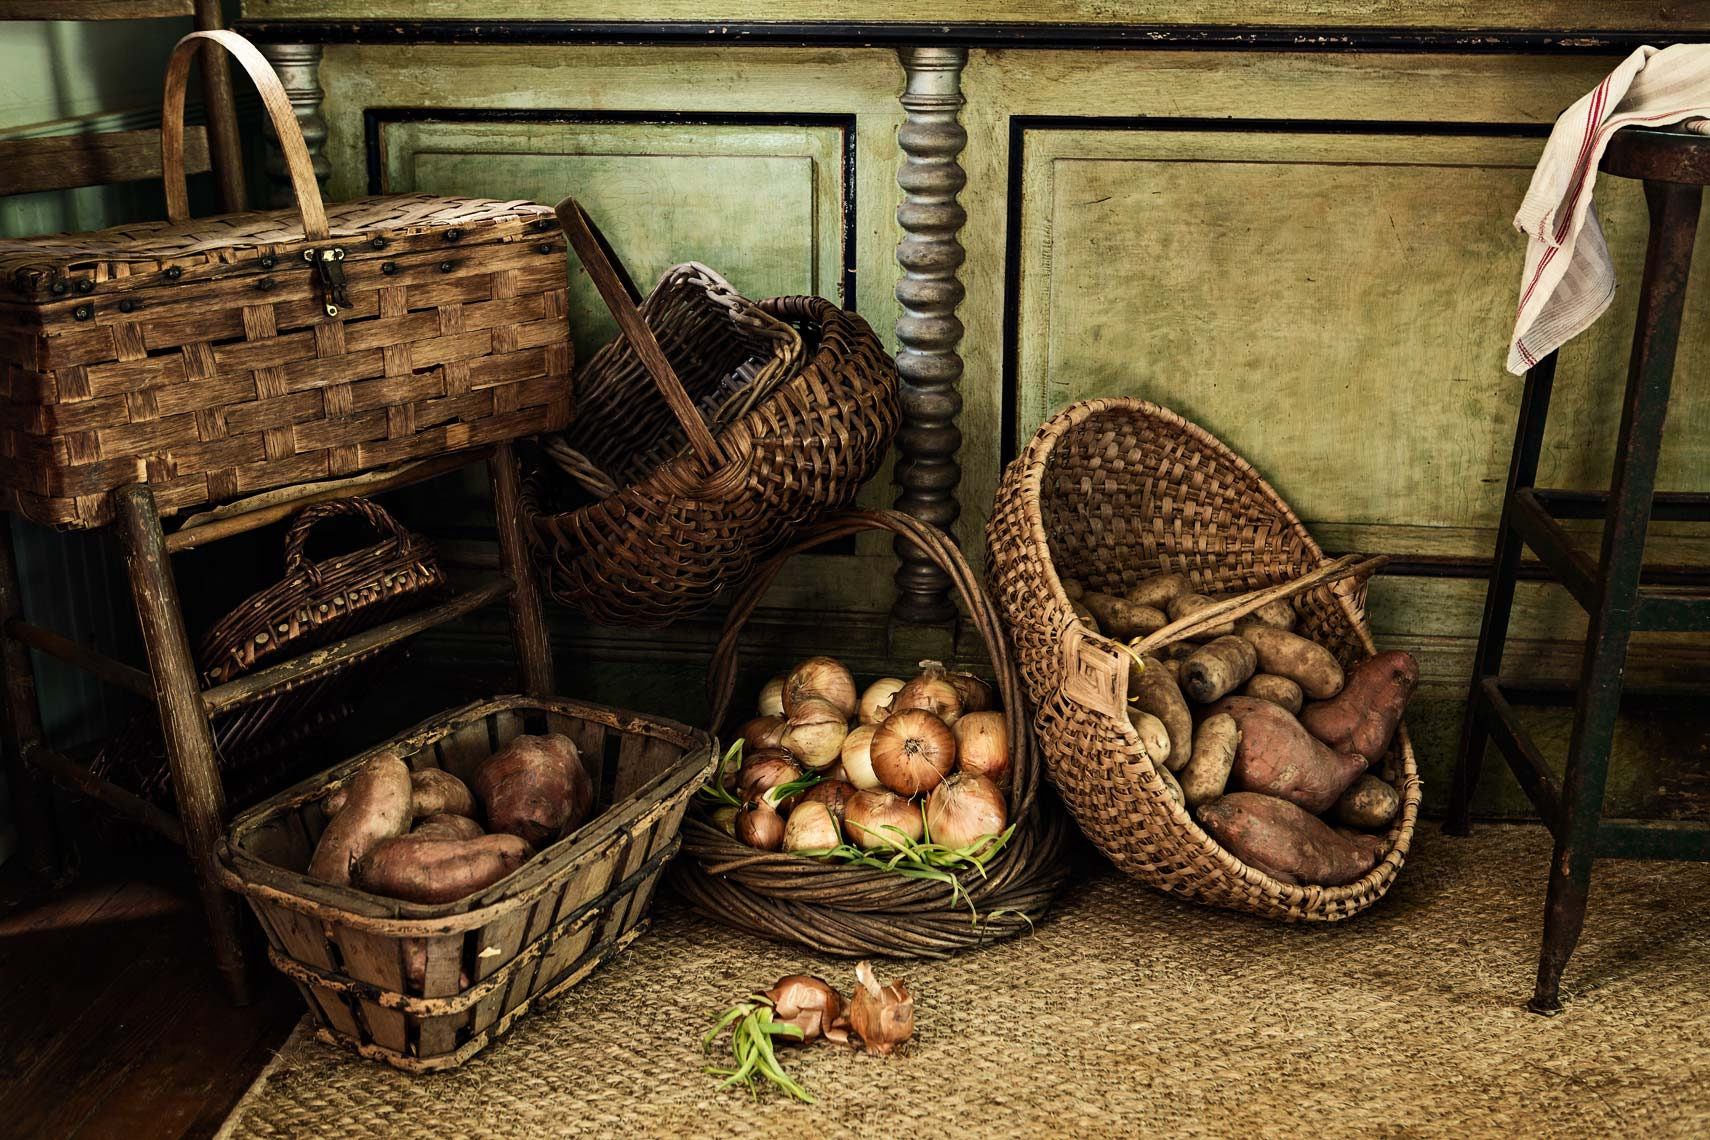 Rustic woven baskets with onions and potatoes rest on kitchen floor, Atlanta